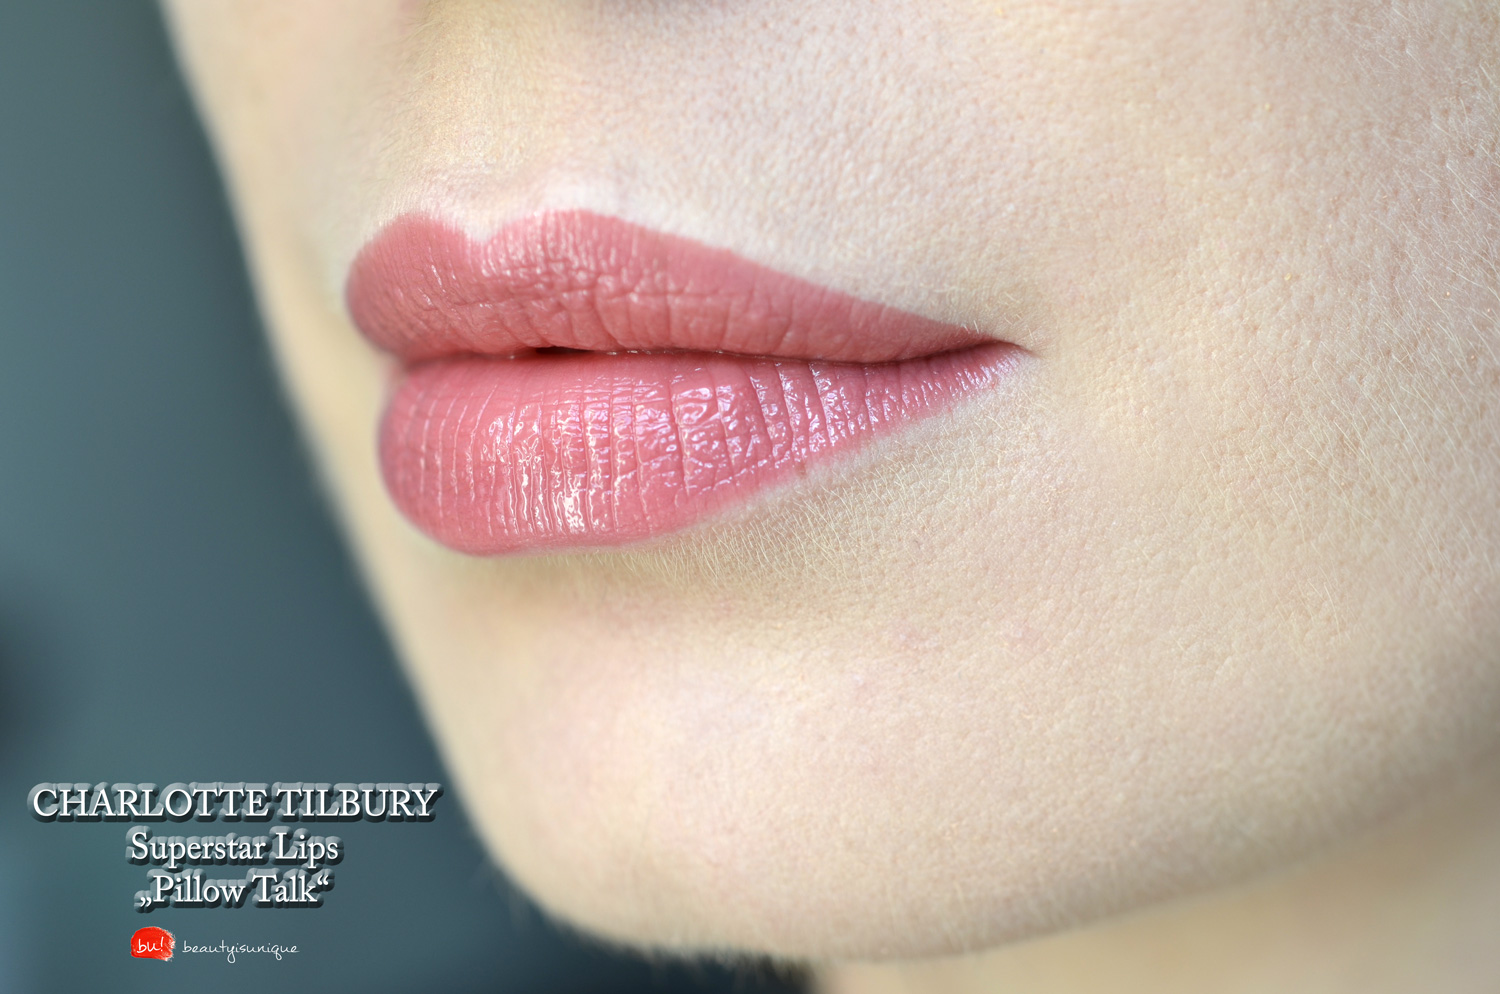 Charlotte-tilbury-pillow-talk-super-star-lips